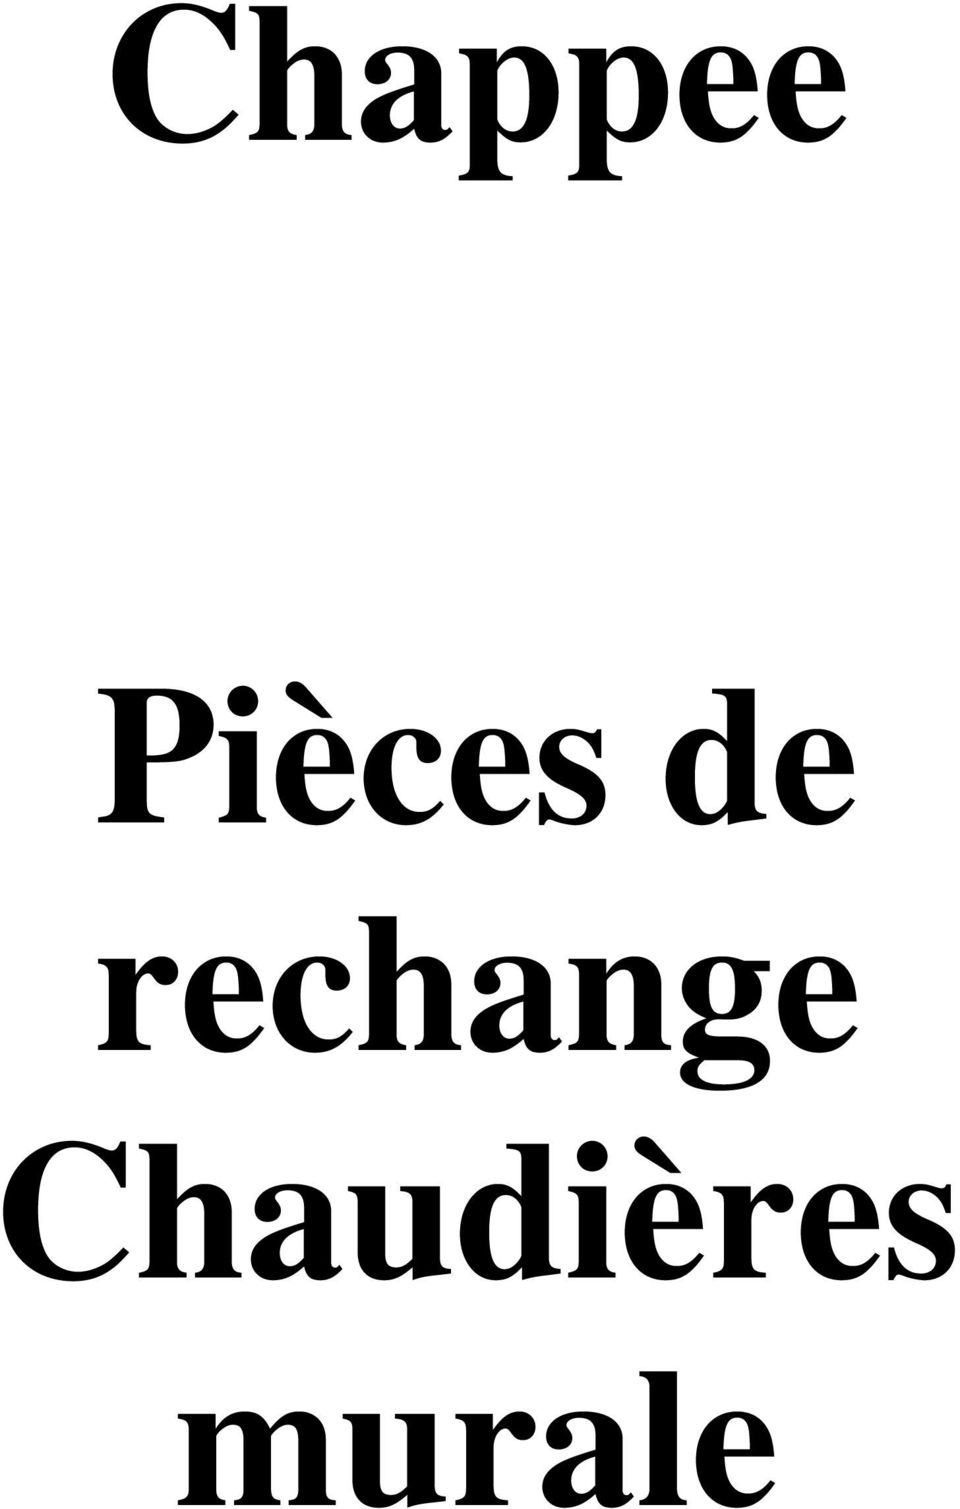 chappee pi ces de rechange chaudi res murale pdf. Black Bedroom Furniture Sets. Home Design Ideas